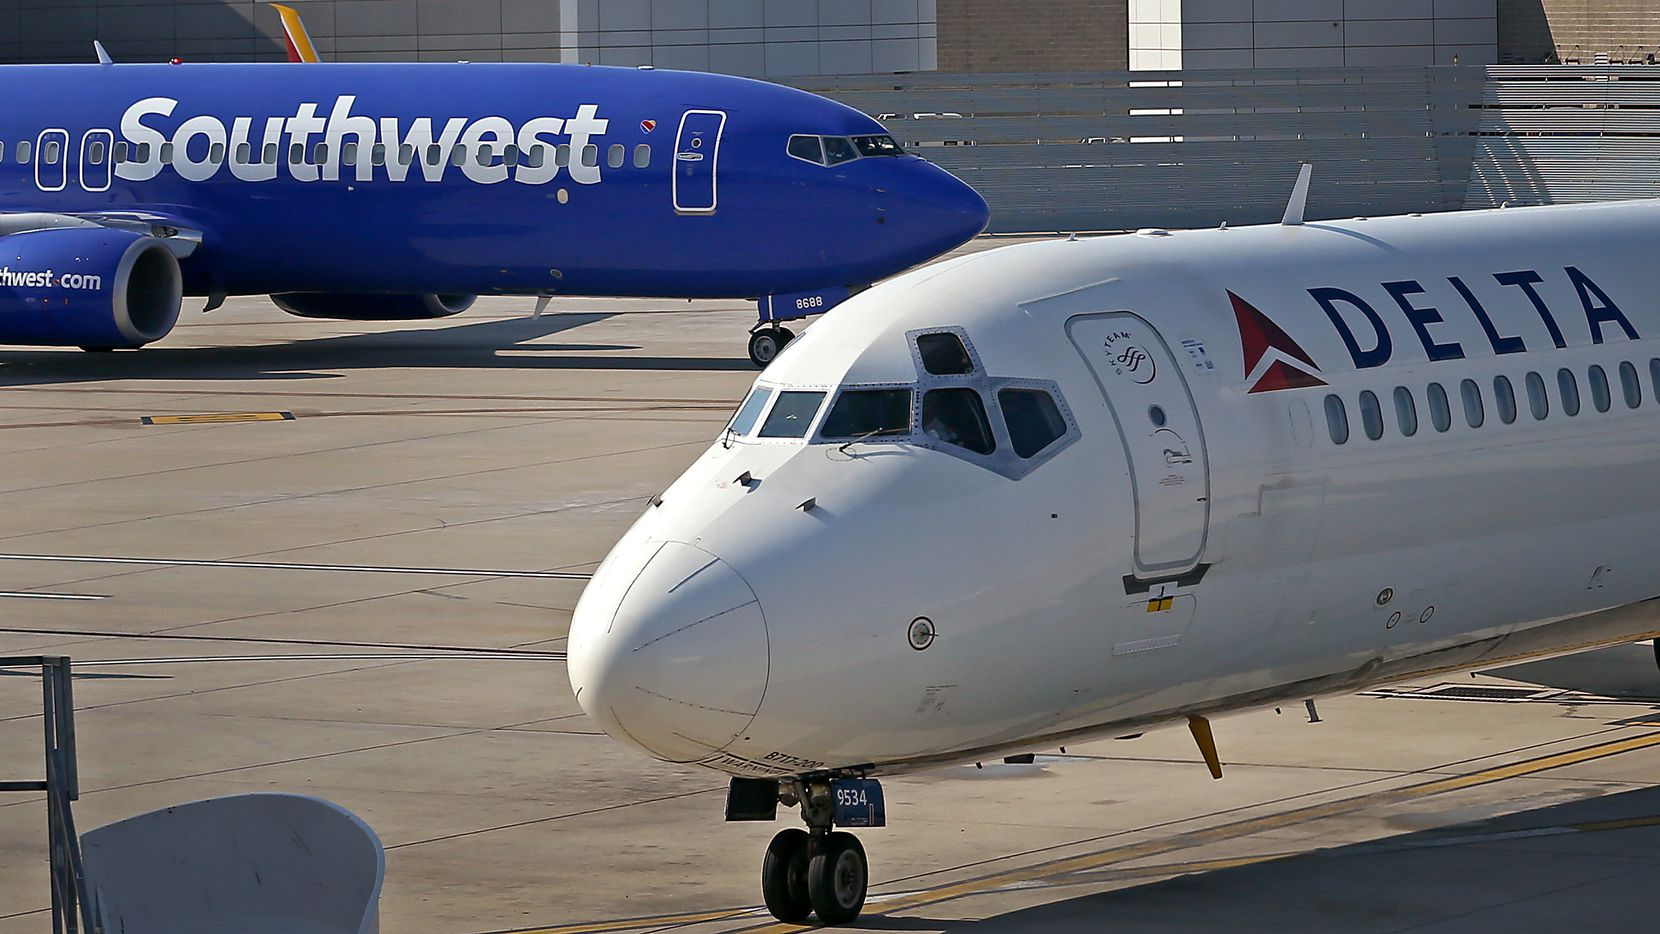 The dispute between Southwest Airlines and Delta Air Lines centers around Gate 15 at the city-owned Dallas Love Field, where the two carriers have been sharing space for more than a year. (Jae S. Lee/Staff Photographer)